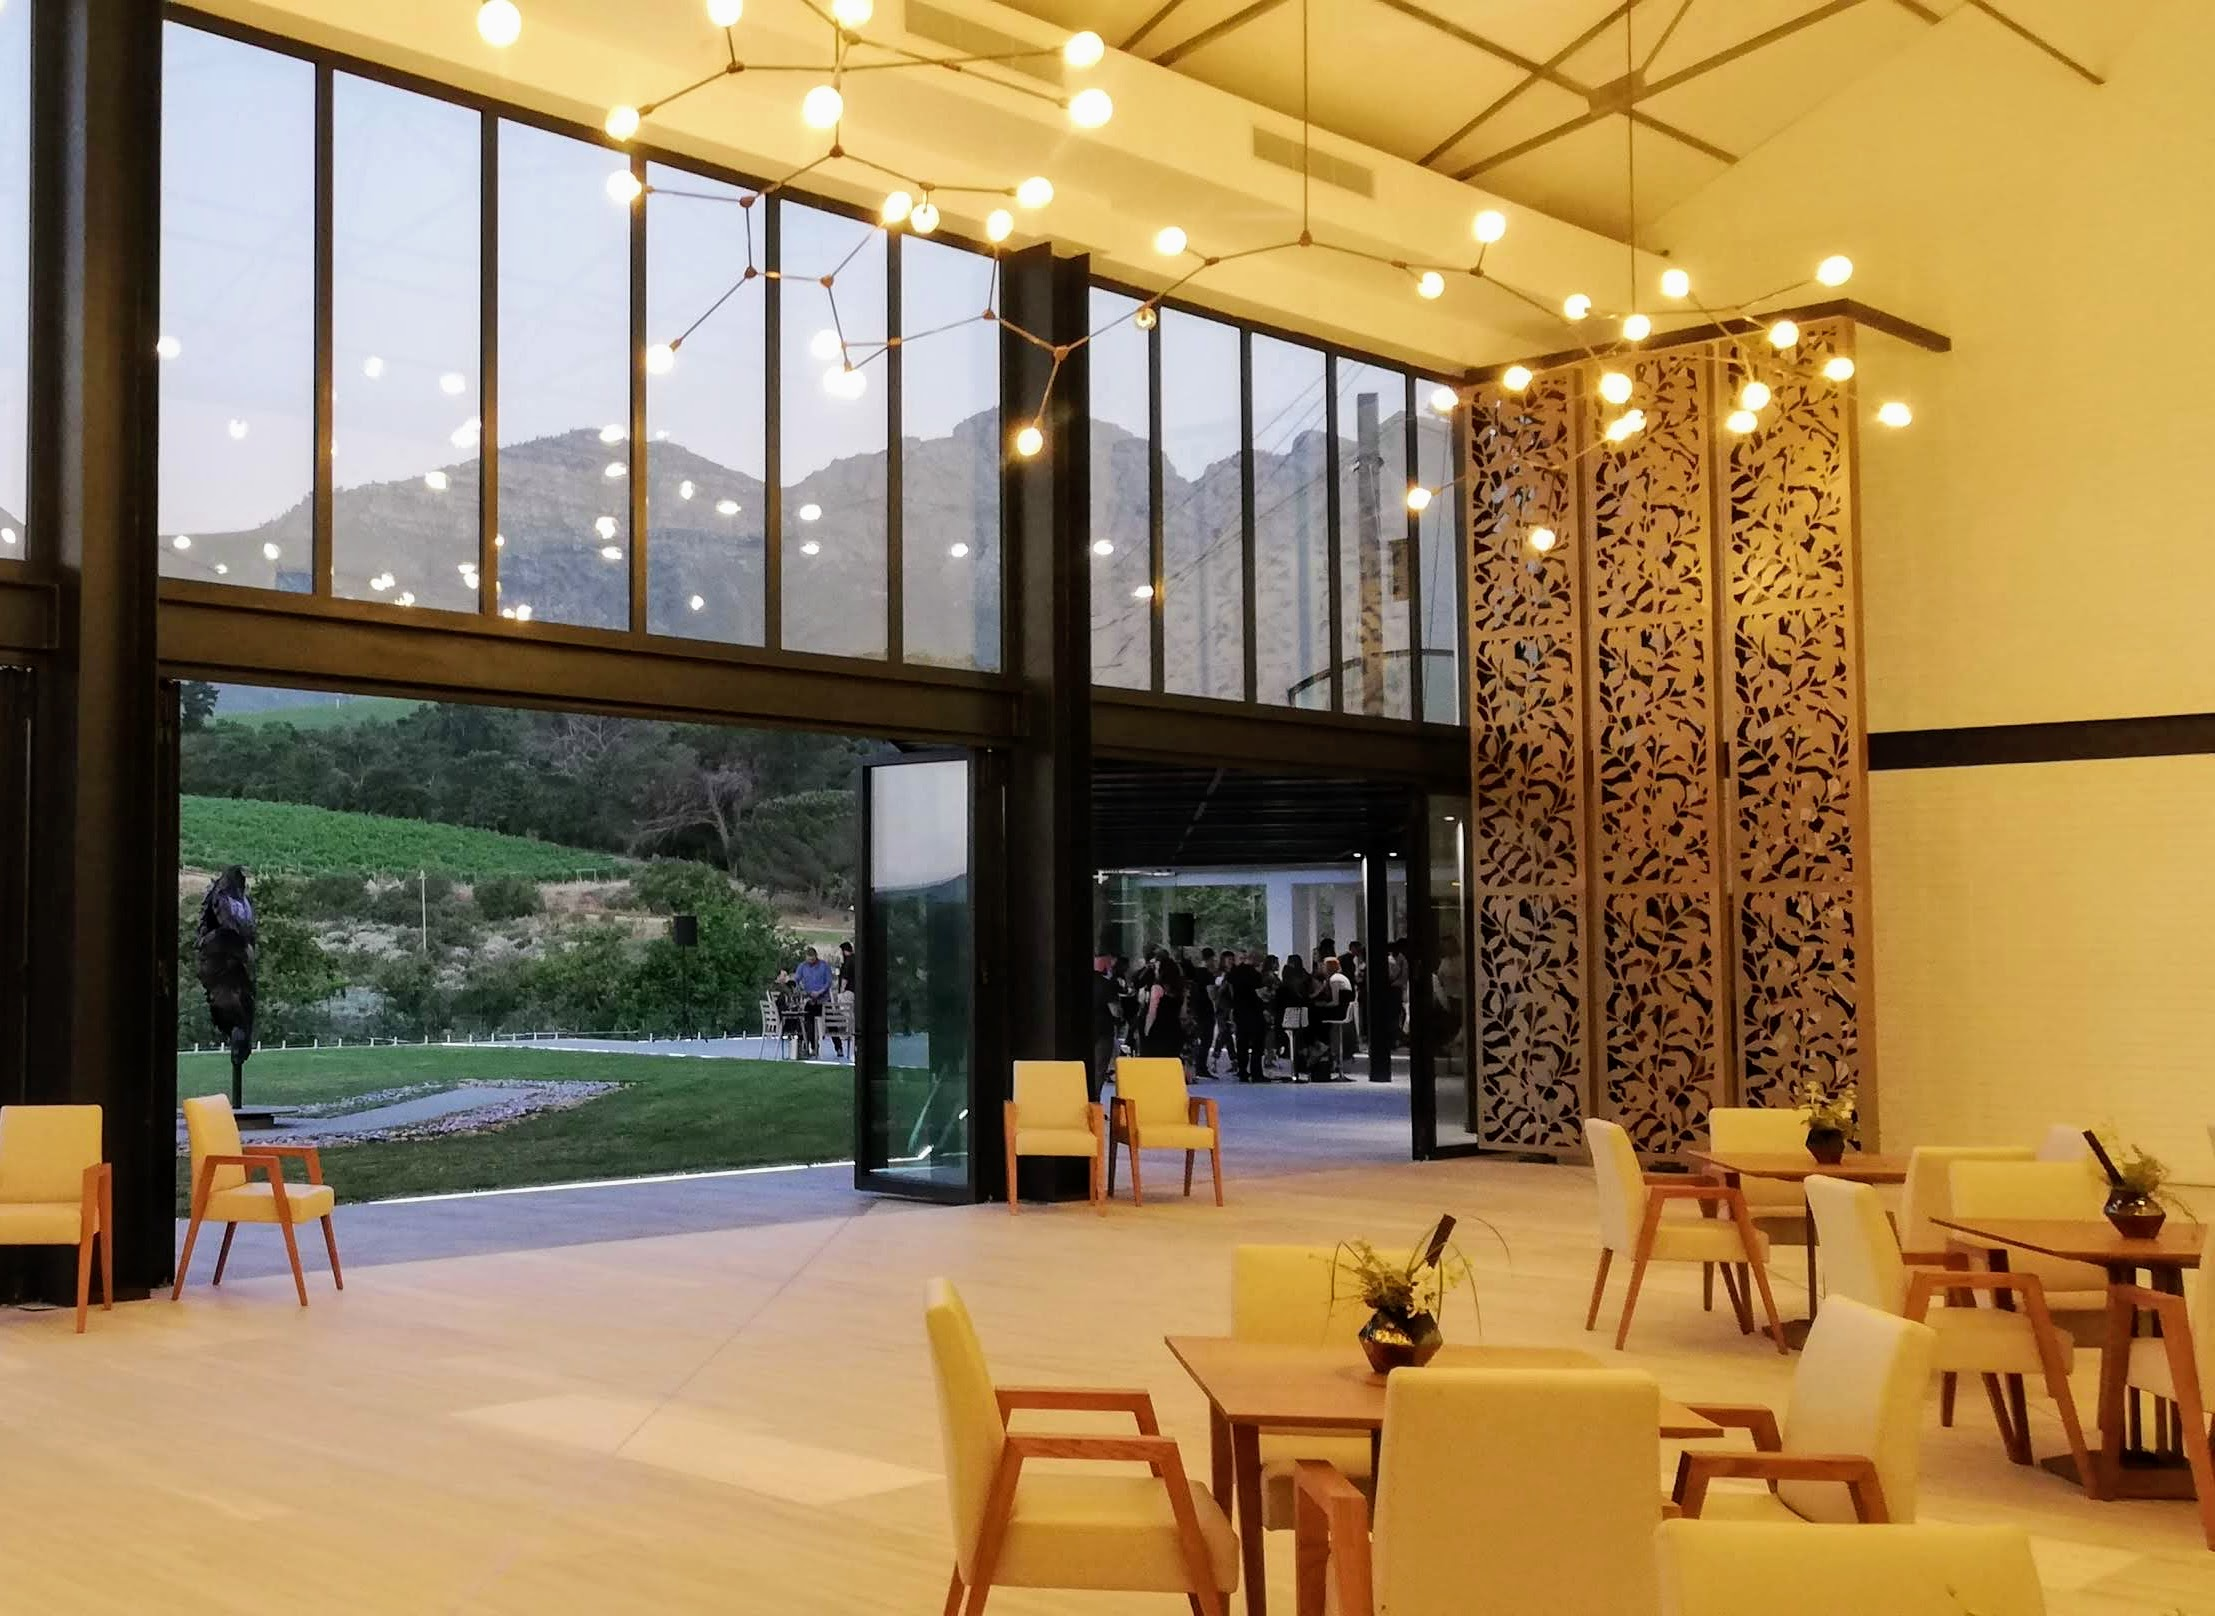 wedding venue Qioun rock Quoin Rock gets a major revamp and a fancy new restaurant